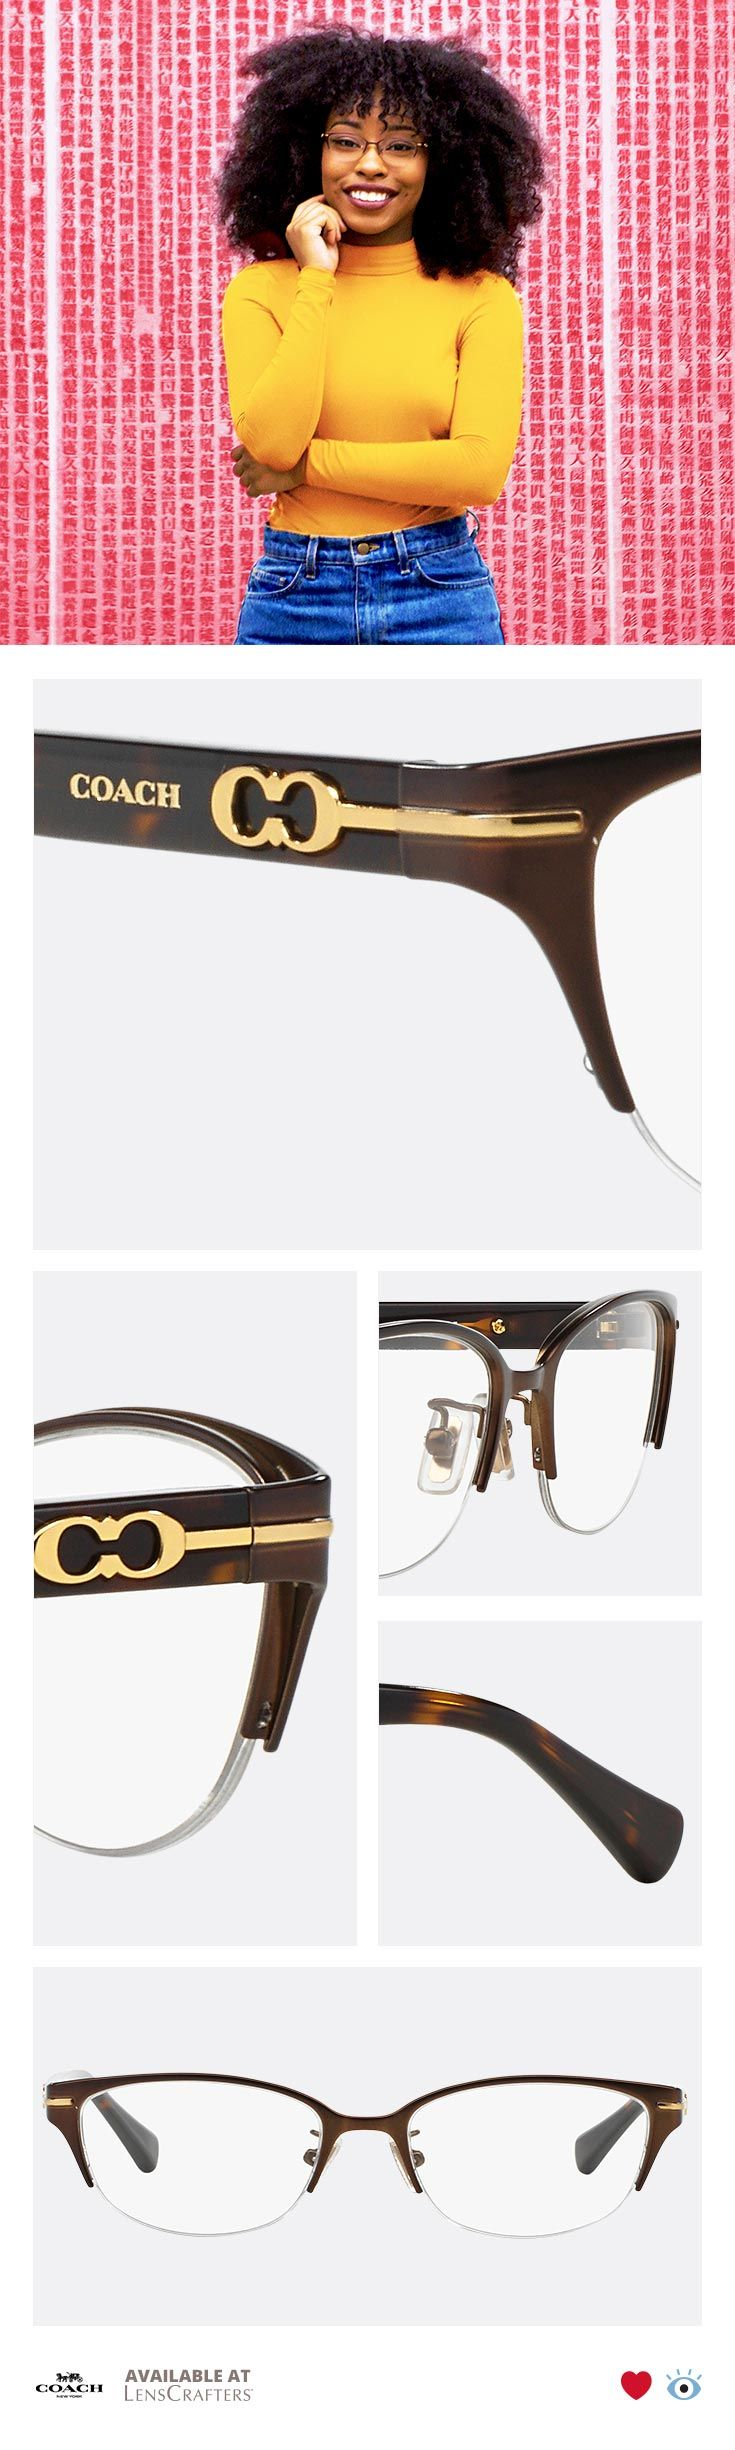 A delicate metal cat-eye shape in a burnished satin eyeglass frame defines Coach elegance. Tortoise temples and Kissing Cs logo add exquisite, jewel-like details to this eyeglass frame. Shown here in satin brown/dark tortoise with gold signature logo.